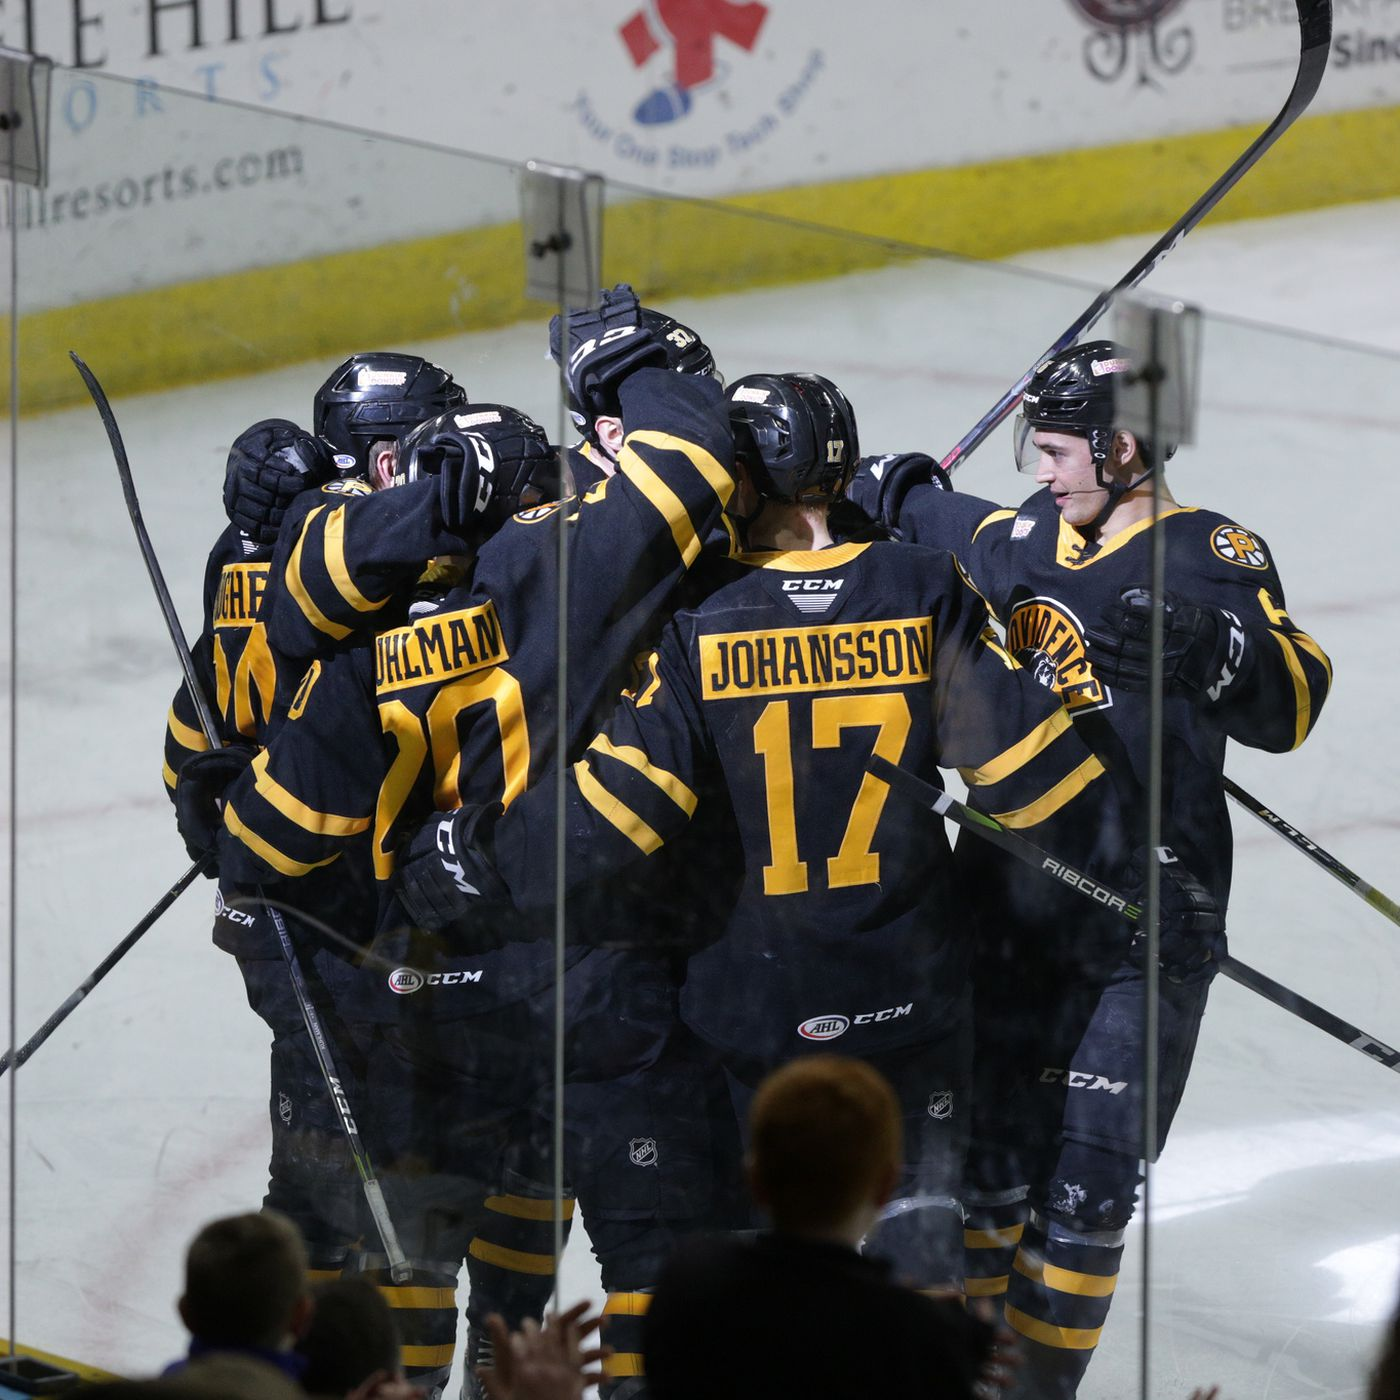 324d2e5dd Providence Bruins Weekend Recap 2 8 - 2 10 - Stanley Cup of Chowder